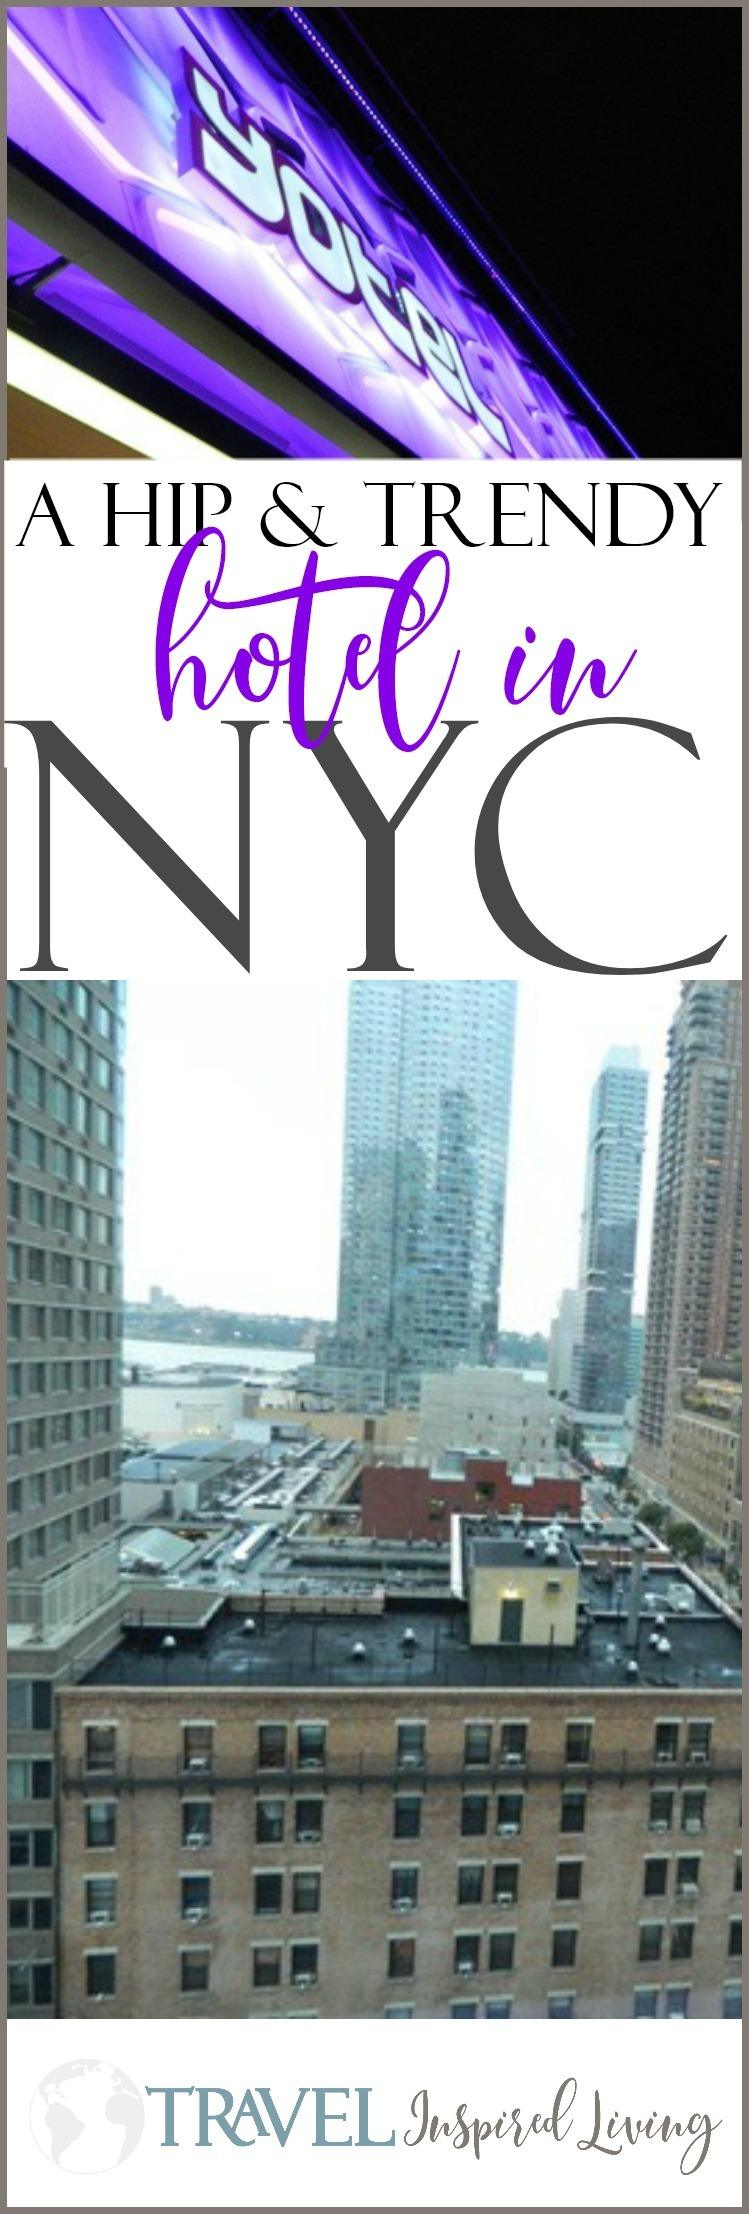 The yotel hip and trendy lodging in new york city for Hippest hotels in nyc